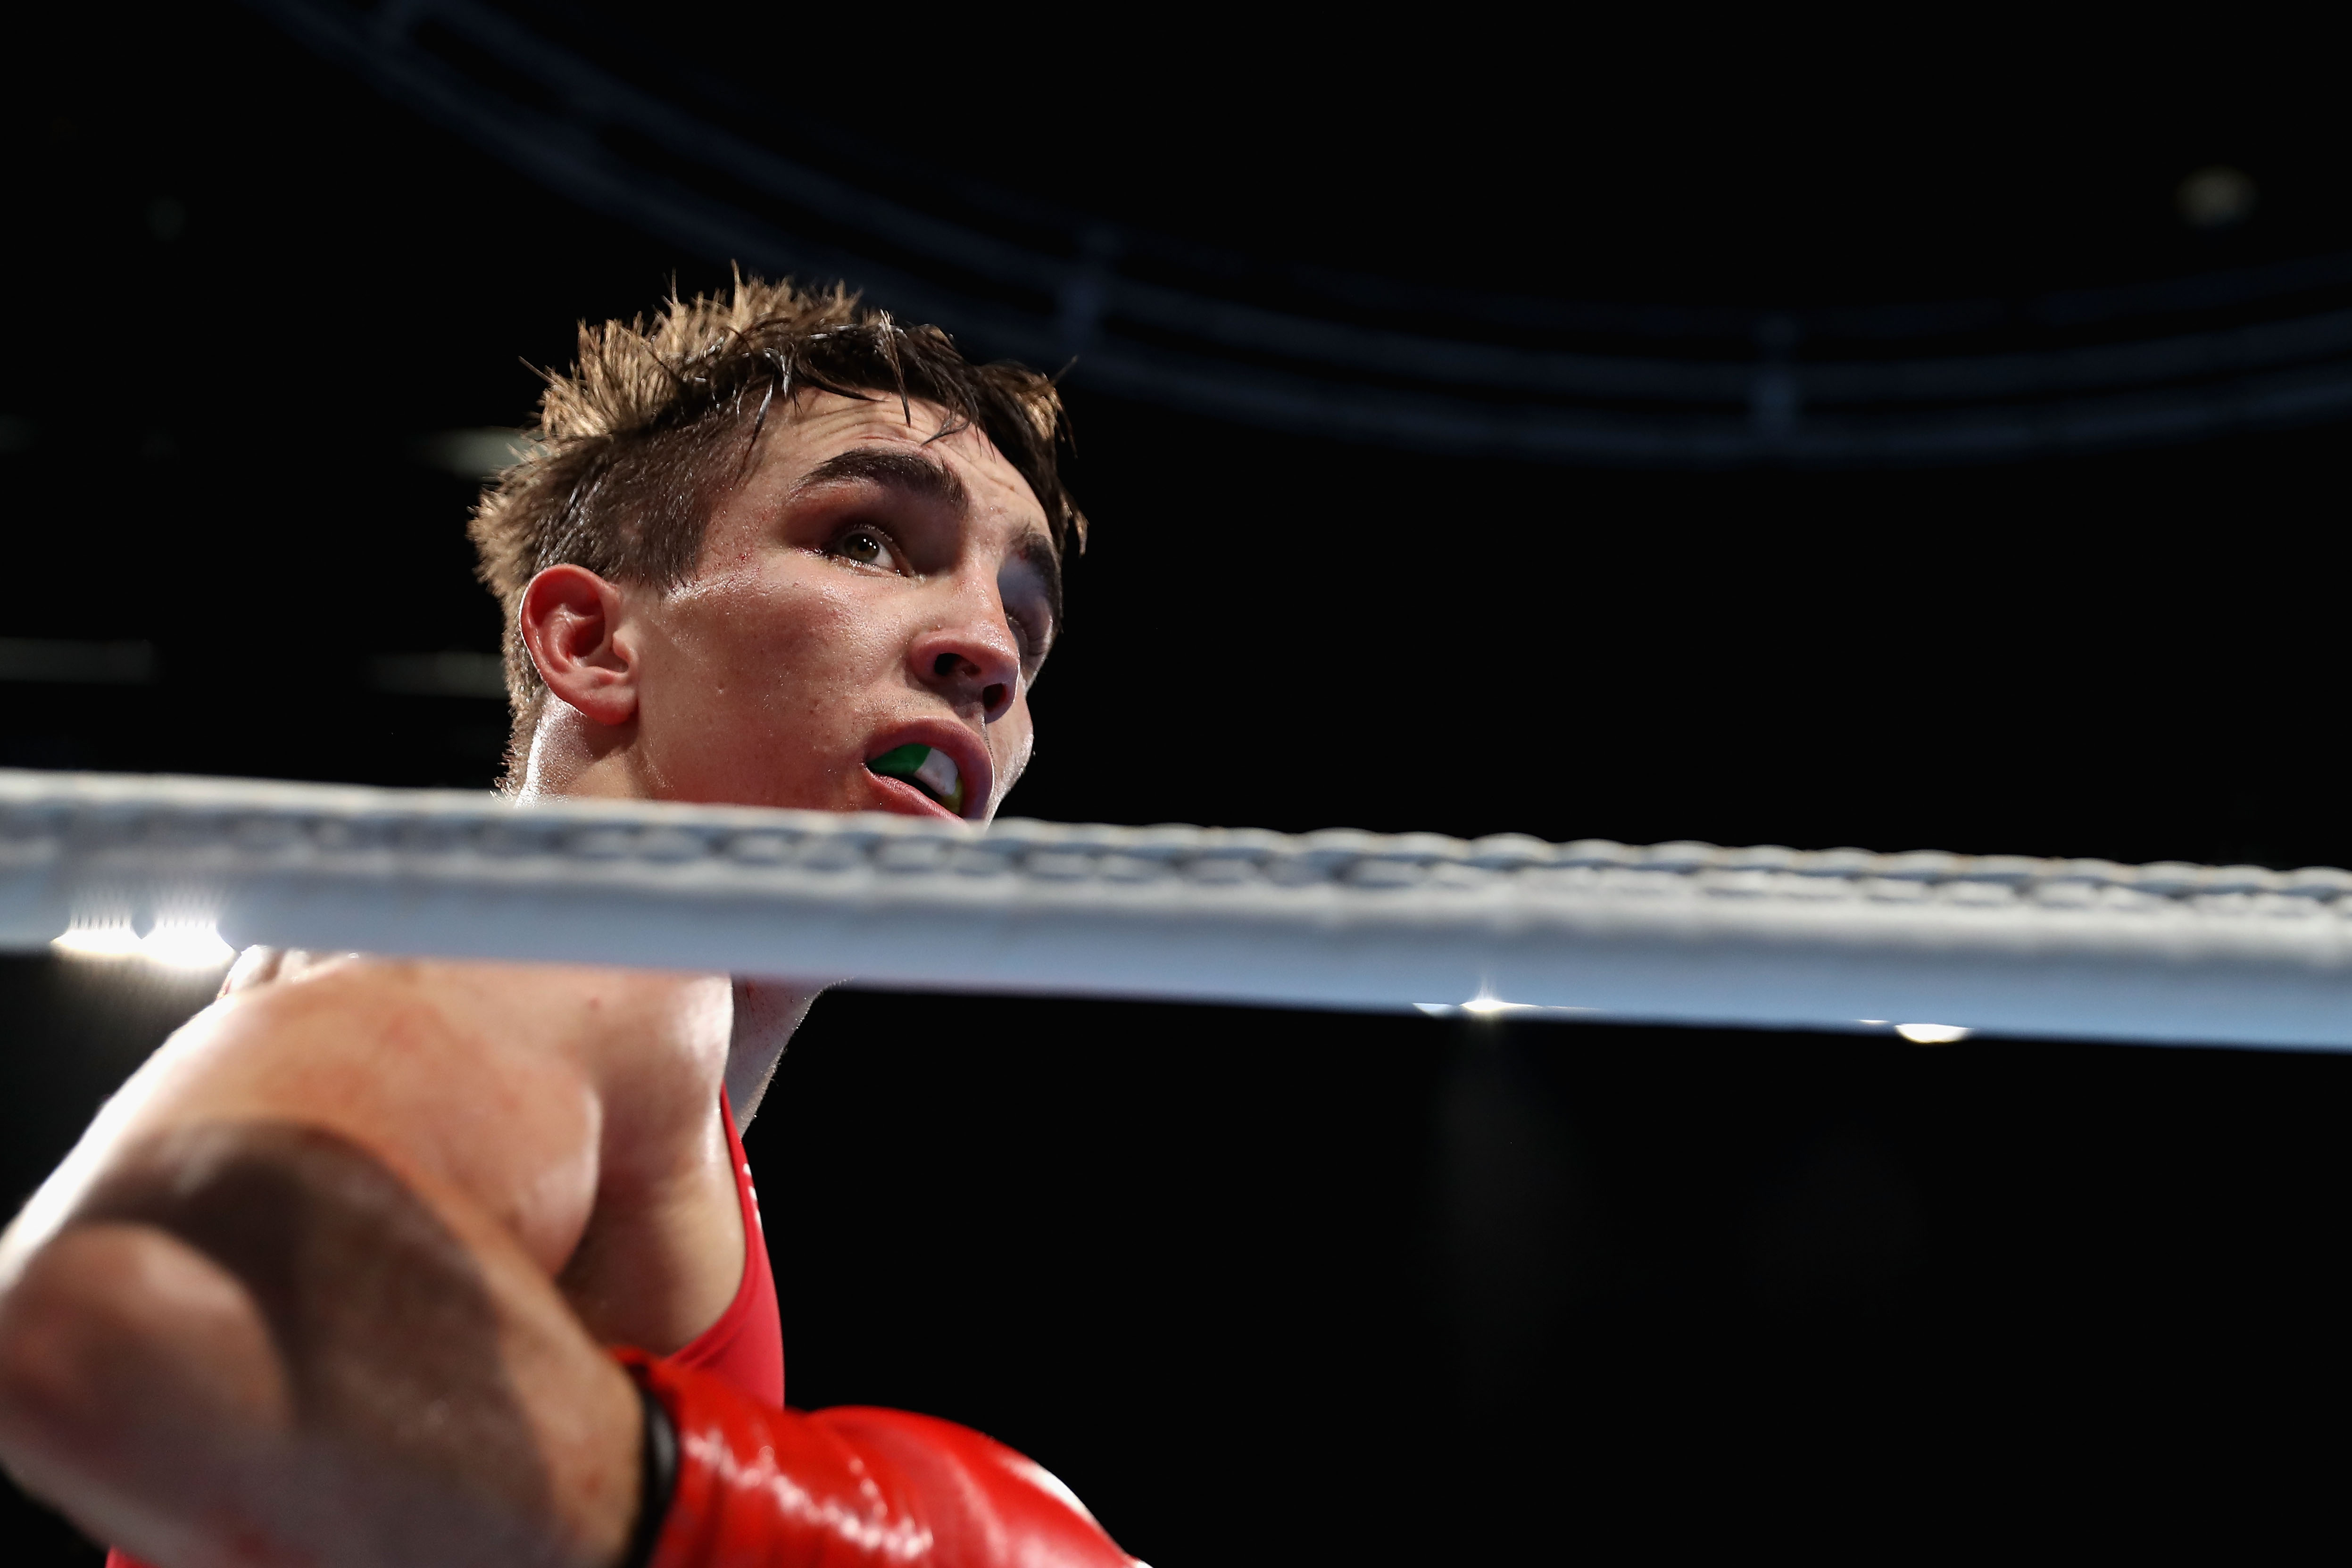 AIBA president wants to punish Michael Conlan after his post-fight outburst at Rio Olympics